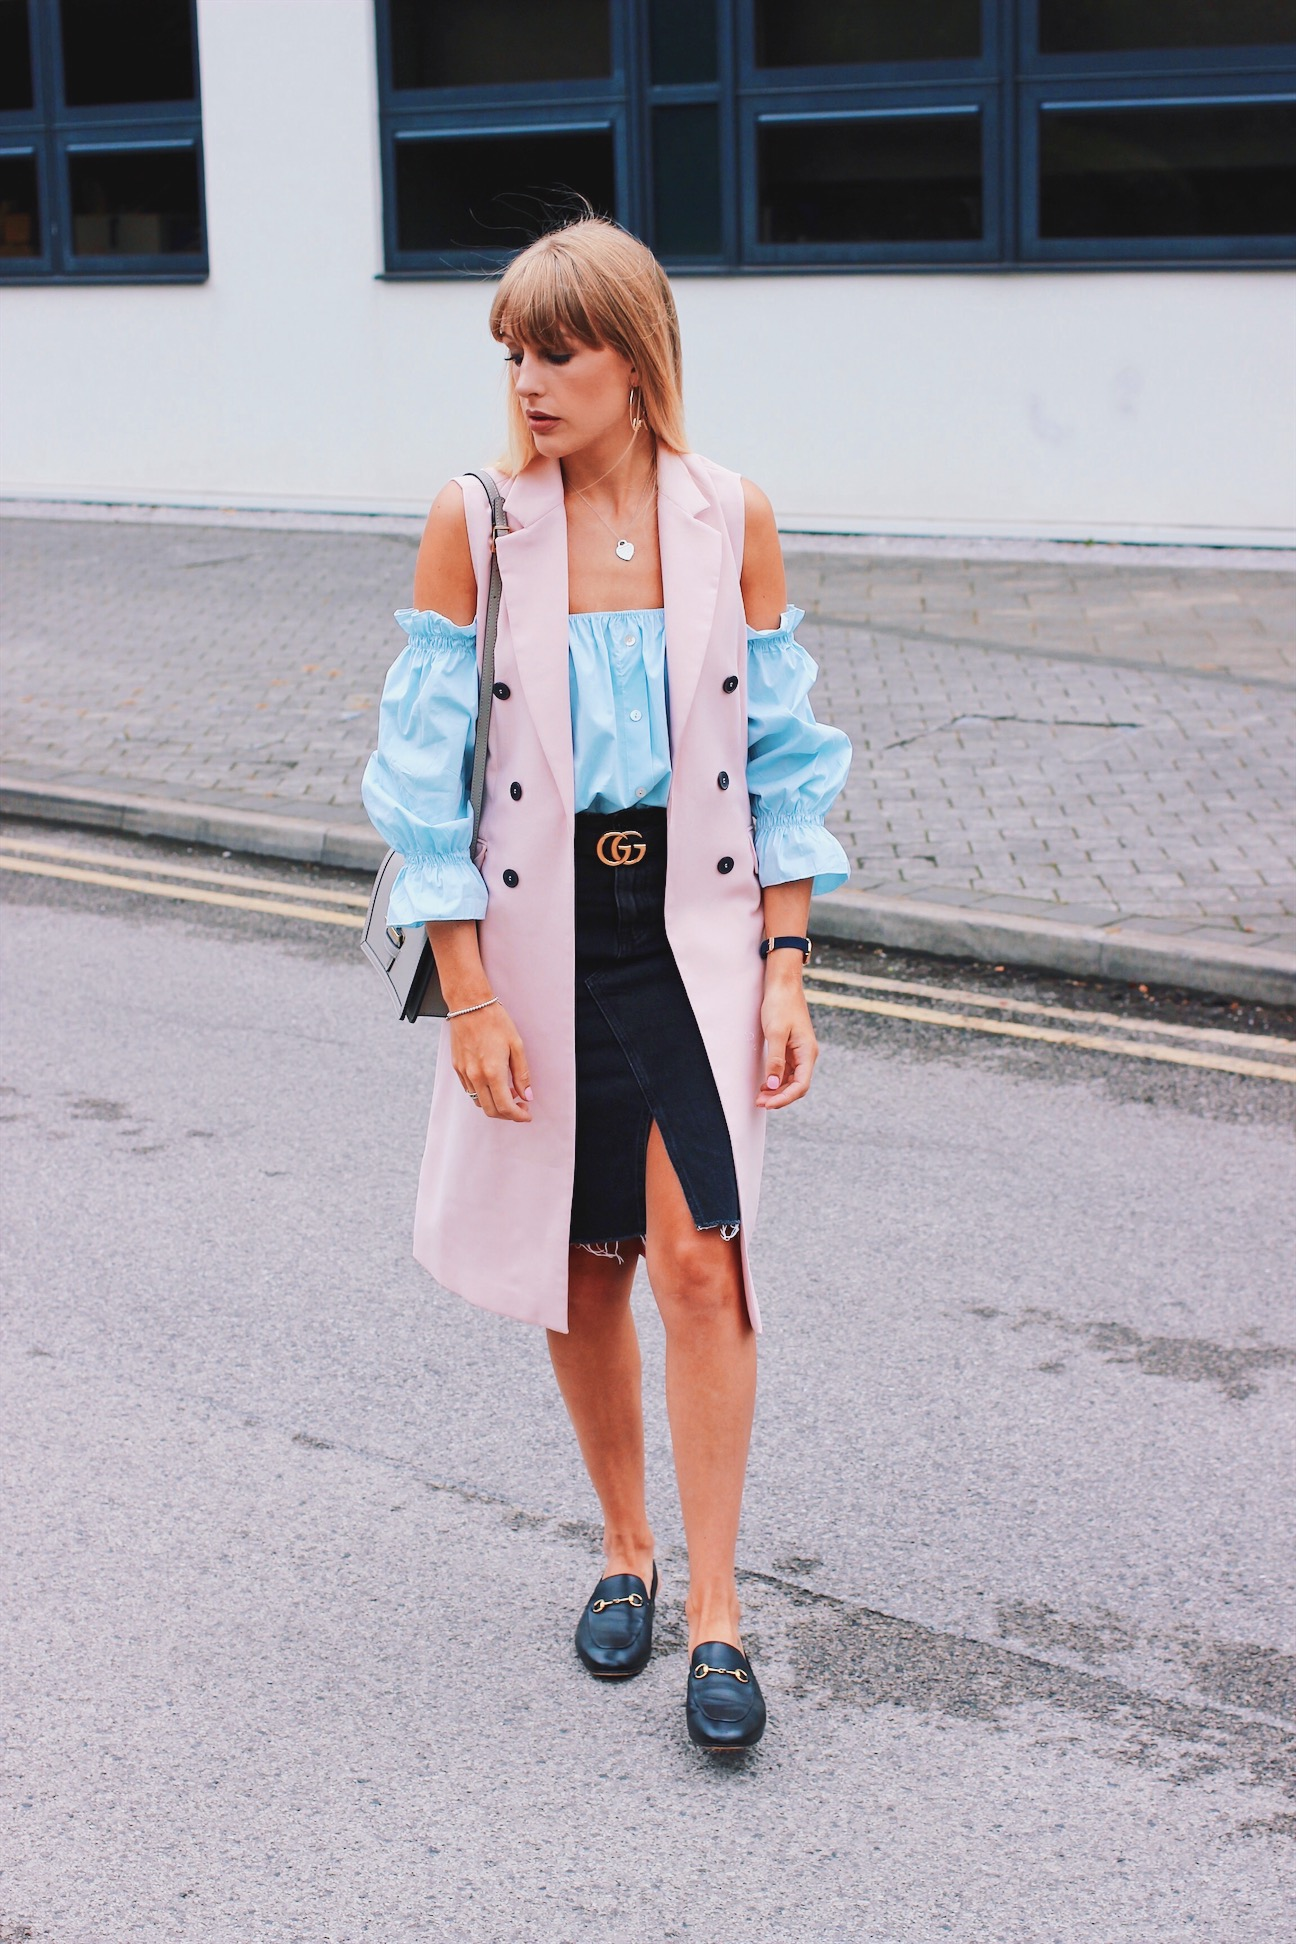 How to style the Gucci Belt Street Style